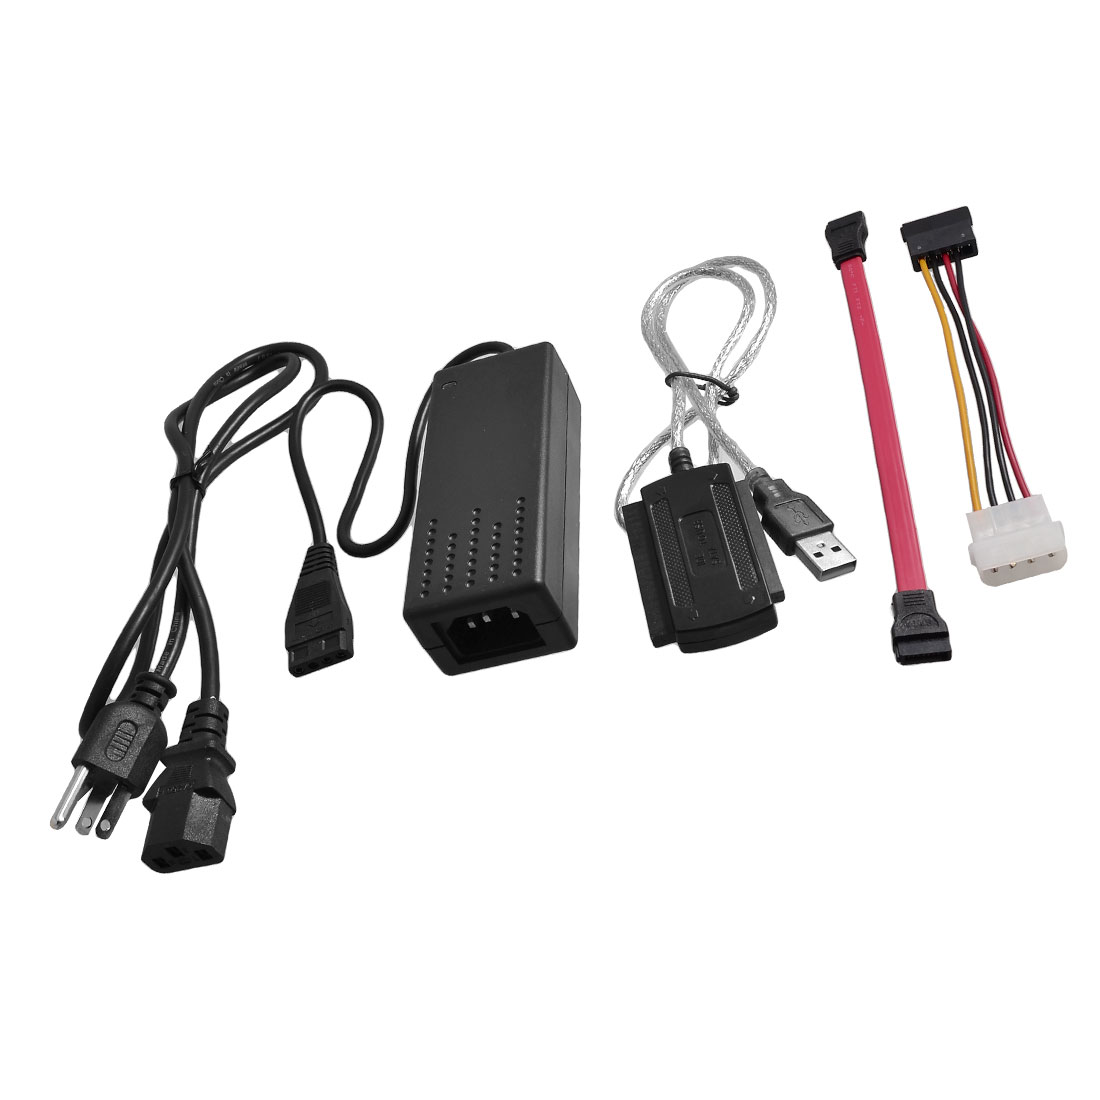 Laptop Desktop USB 2.0 to IDE SATA 2.5 3.5 HDD Adapter Cable